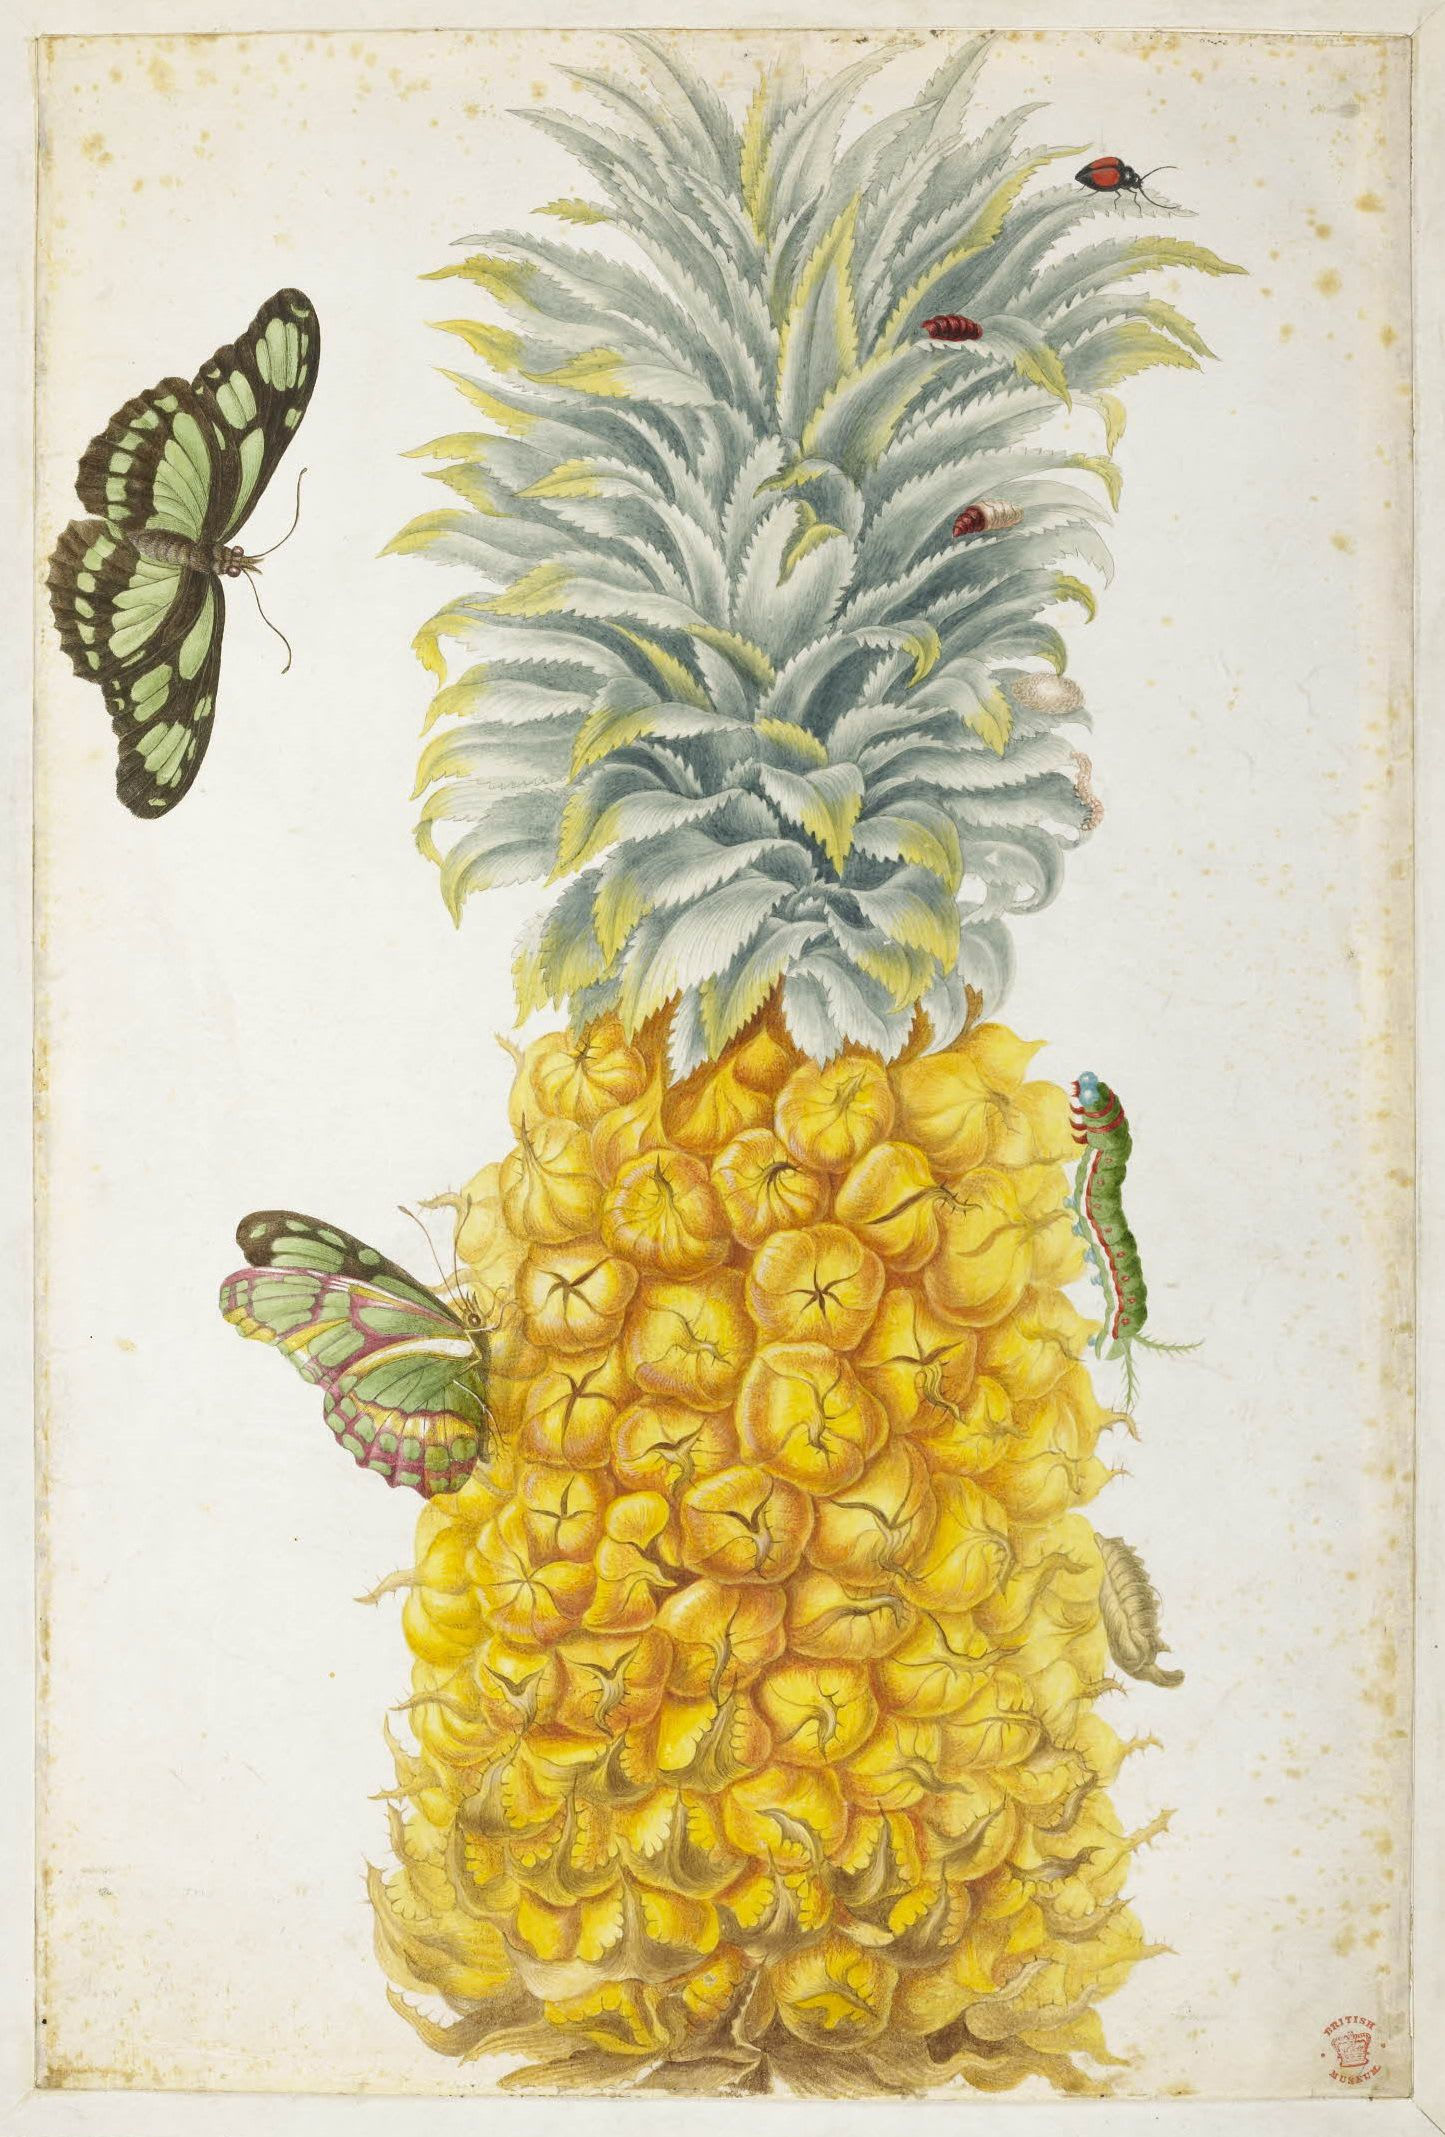 Untitled (Pineapple), c.1701-1705,  Maria Sibylla Merian. © Trustees of the British Museum